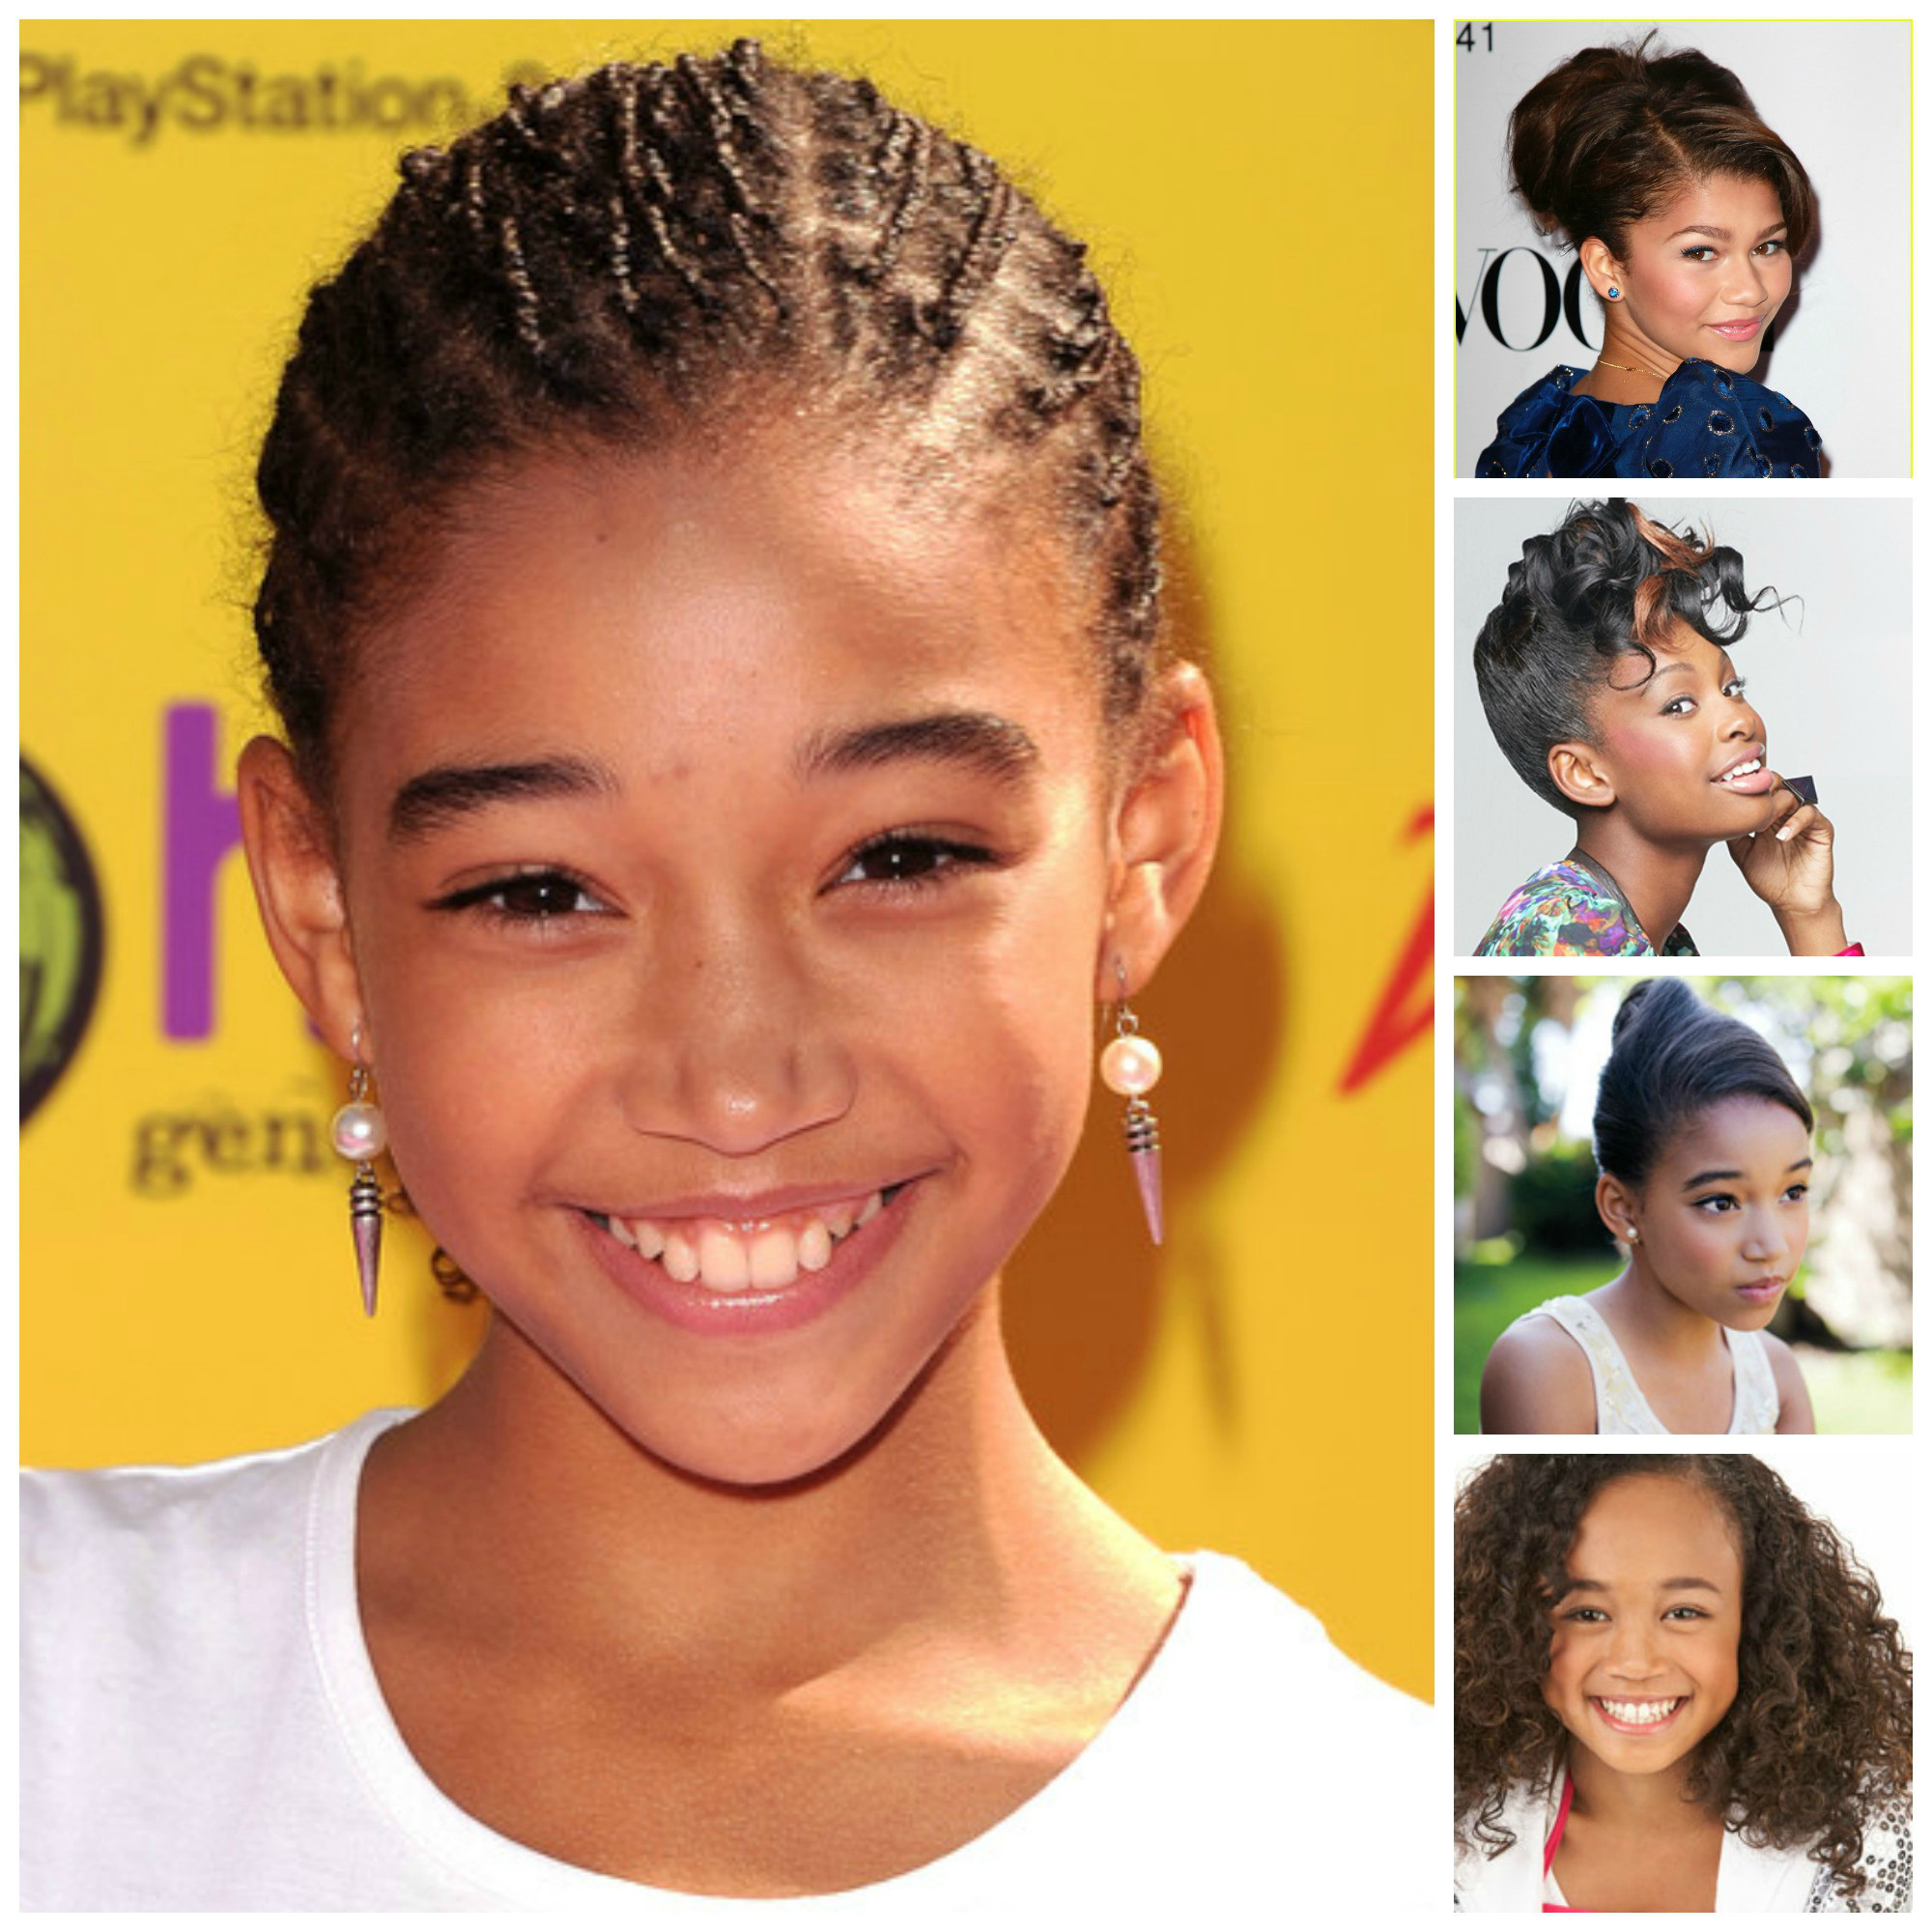 Best ideas about Kids Hairstyles For School . Save or Pin Hairstyles For School Children Now.